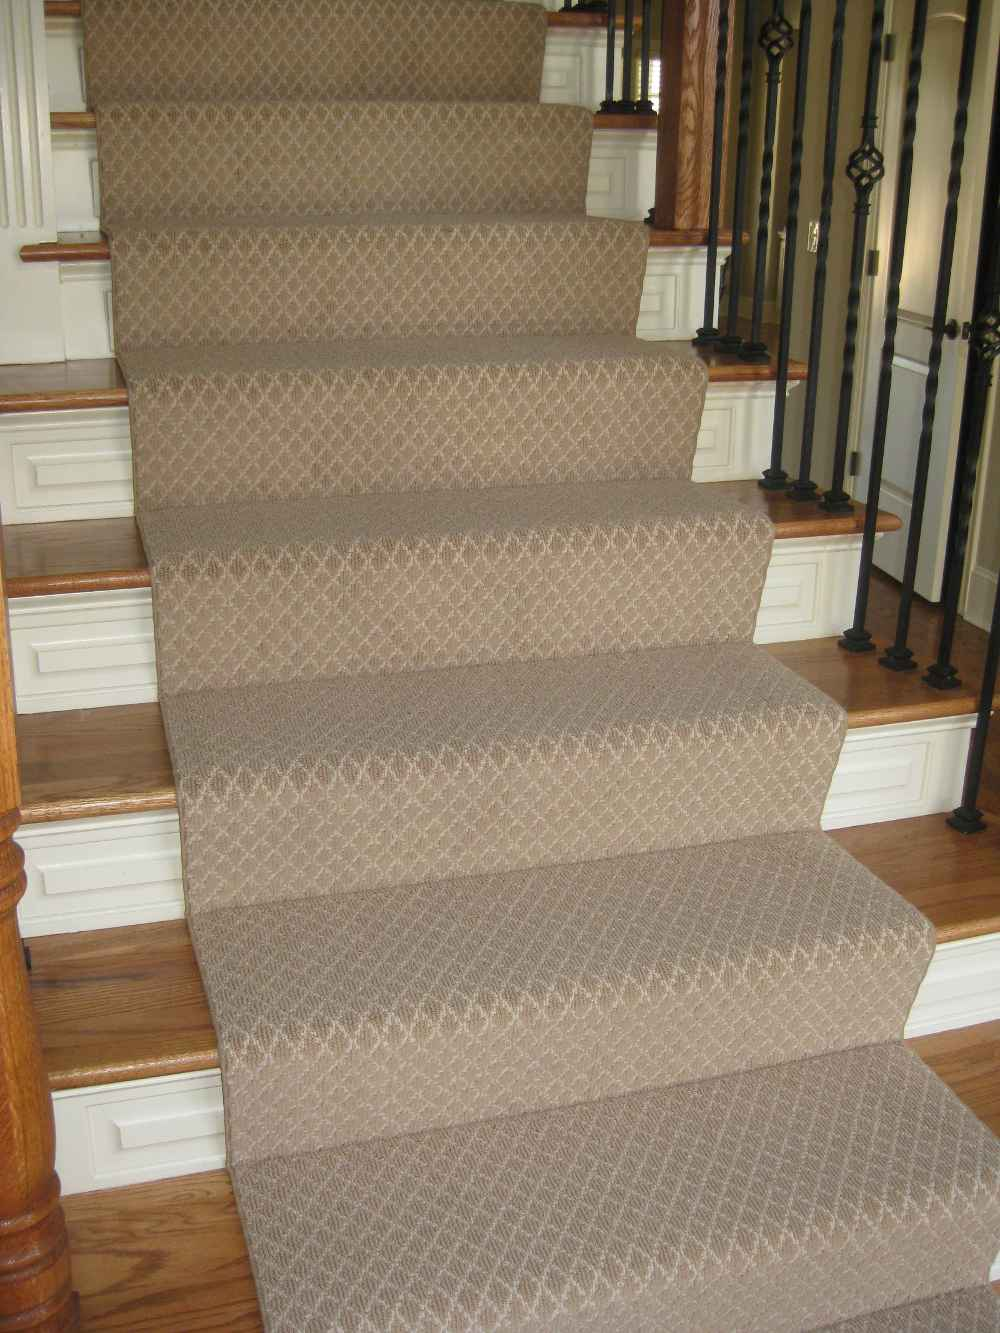 put carpet runners for stairs without damage - http://memdream.com/ ELJSFHO